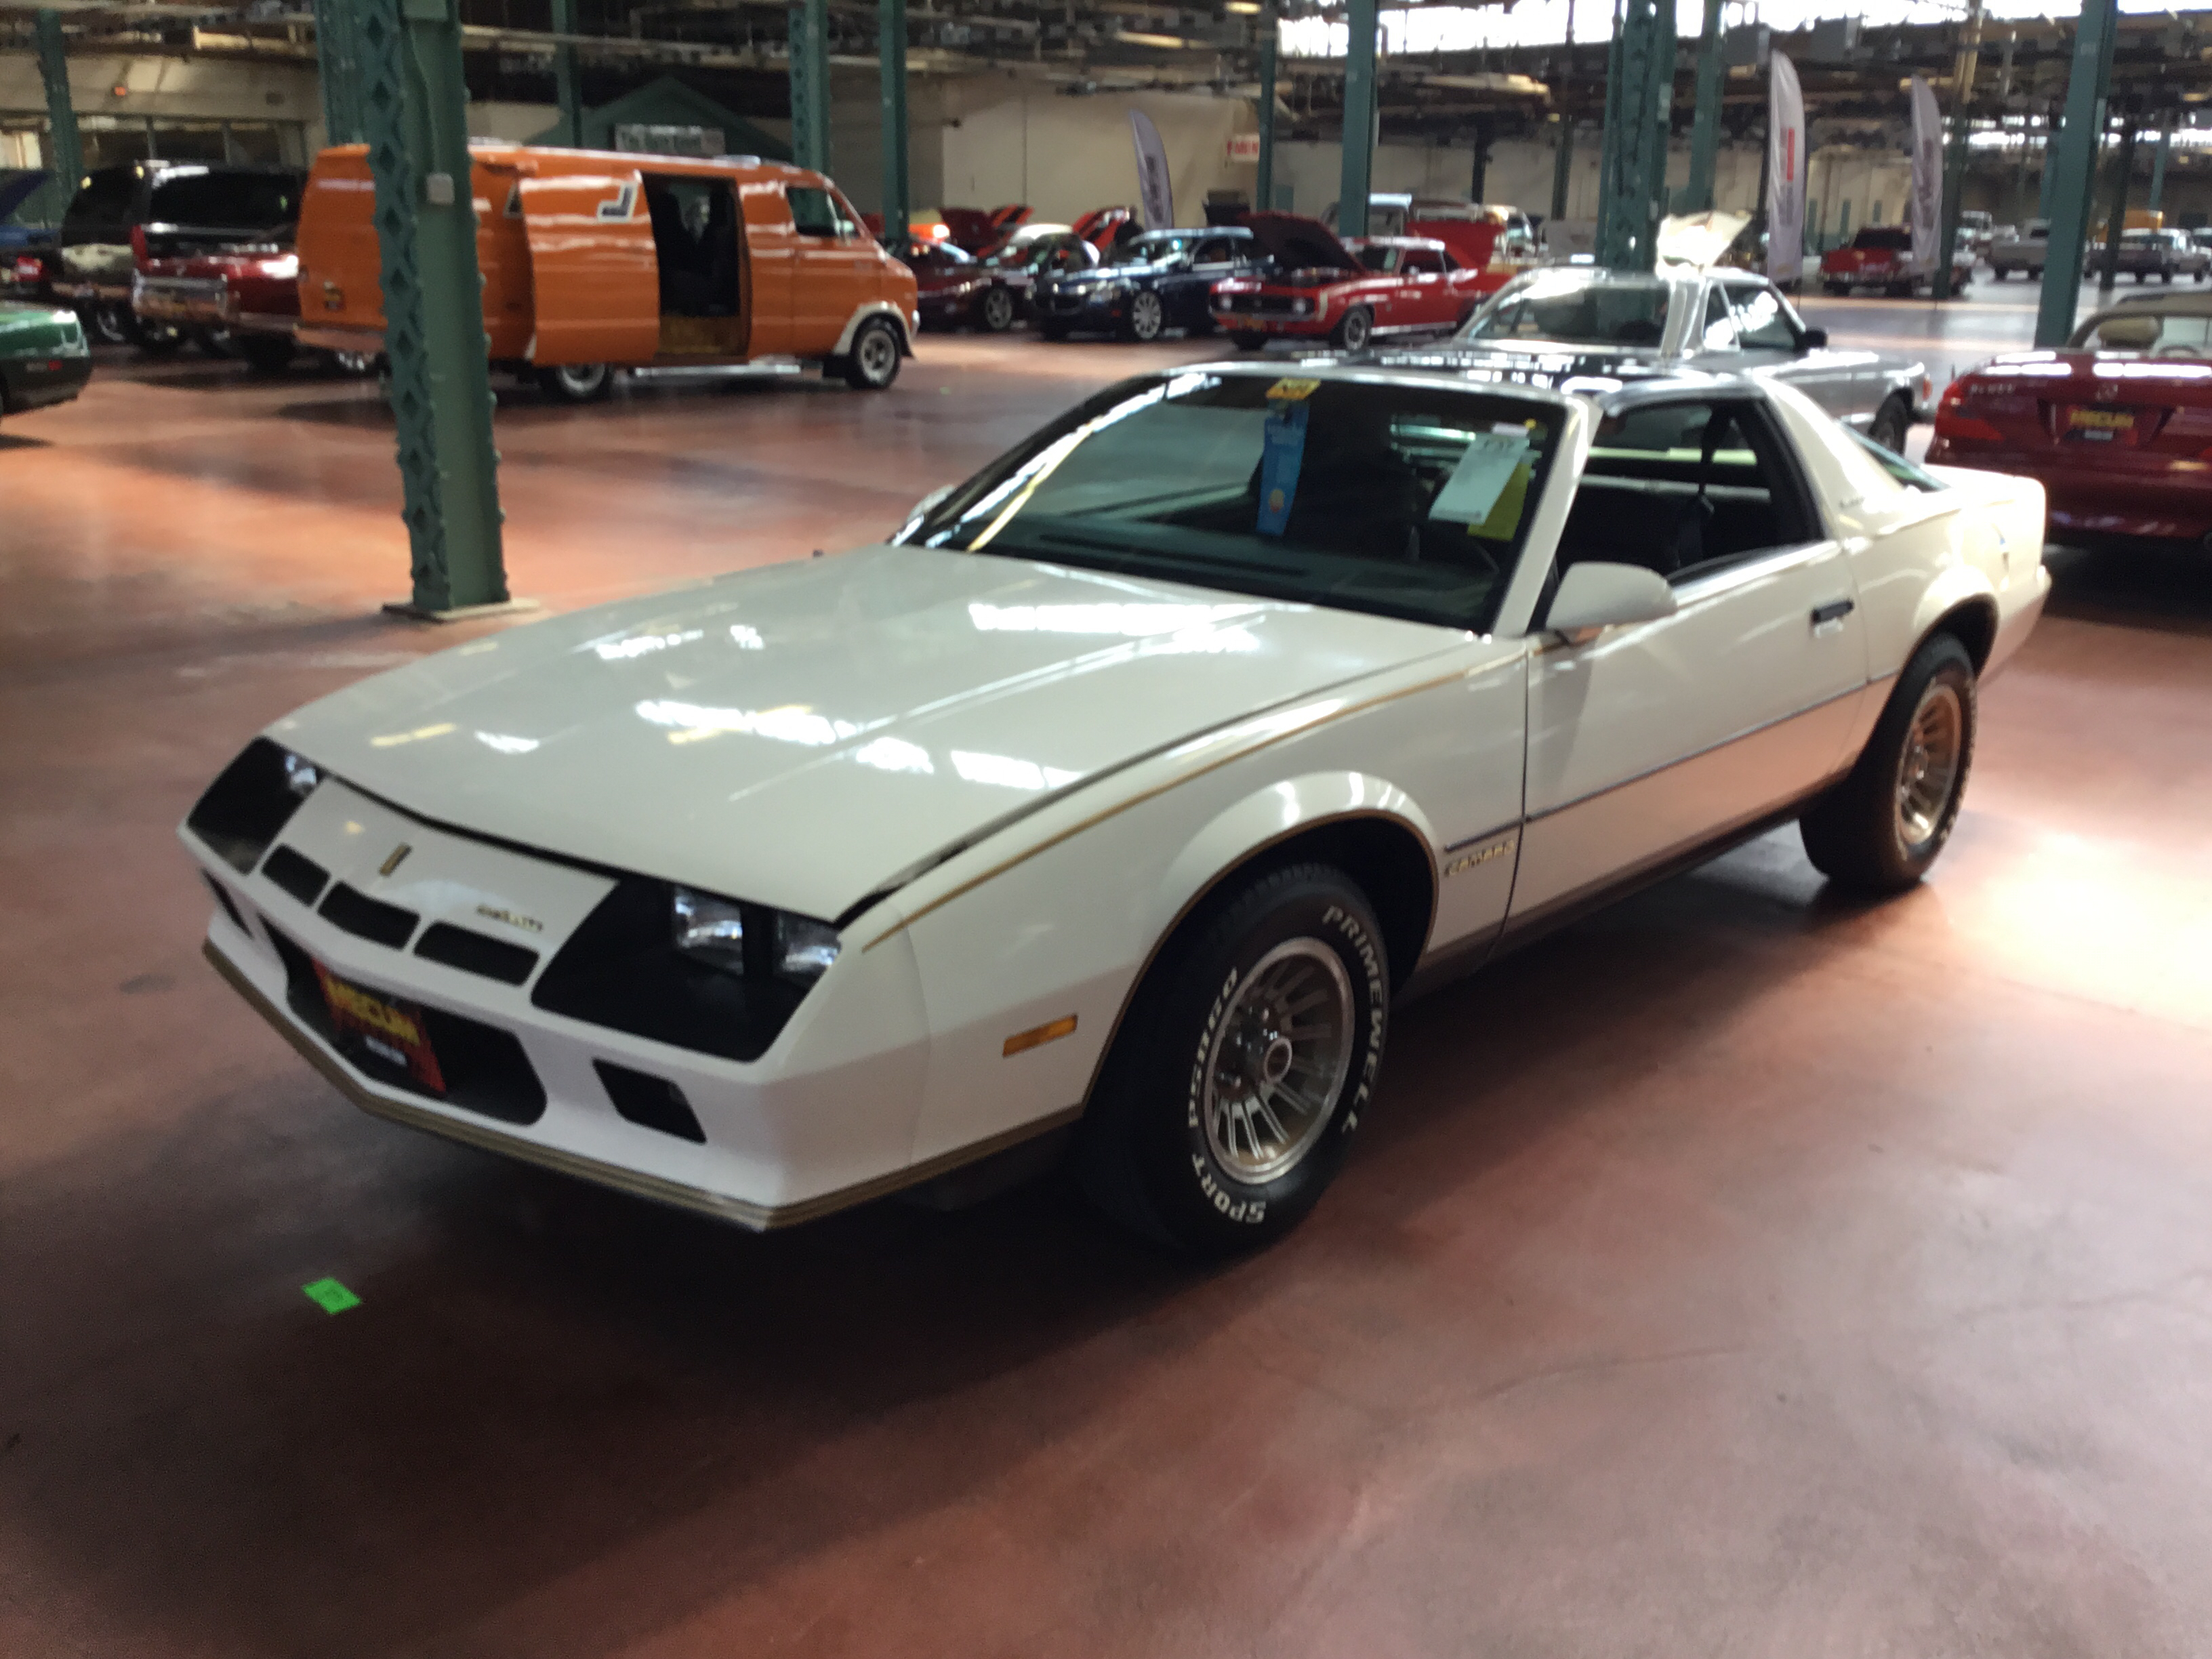 1989 Chevrolet Camaro RS Values   Hagerty Valuation Tool®